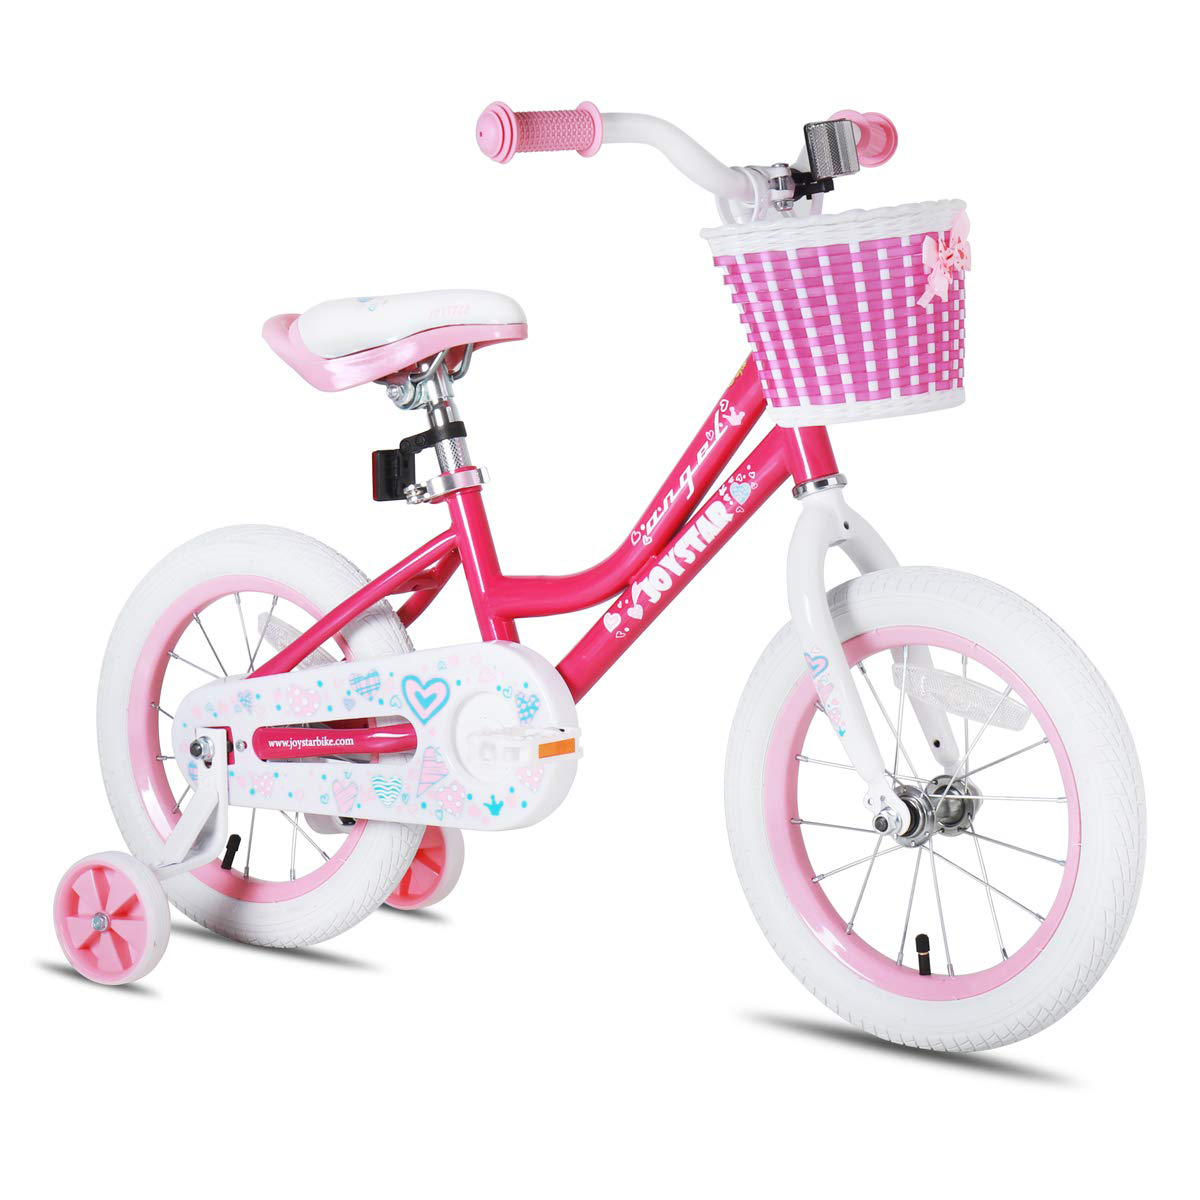 Joystar Angel 14inch Ride On Girls Kids Bike With Training Wheels Pink Plz Read For Sale Online Ebay